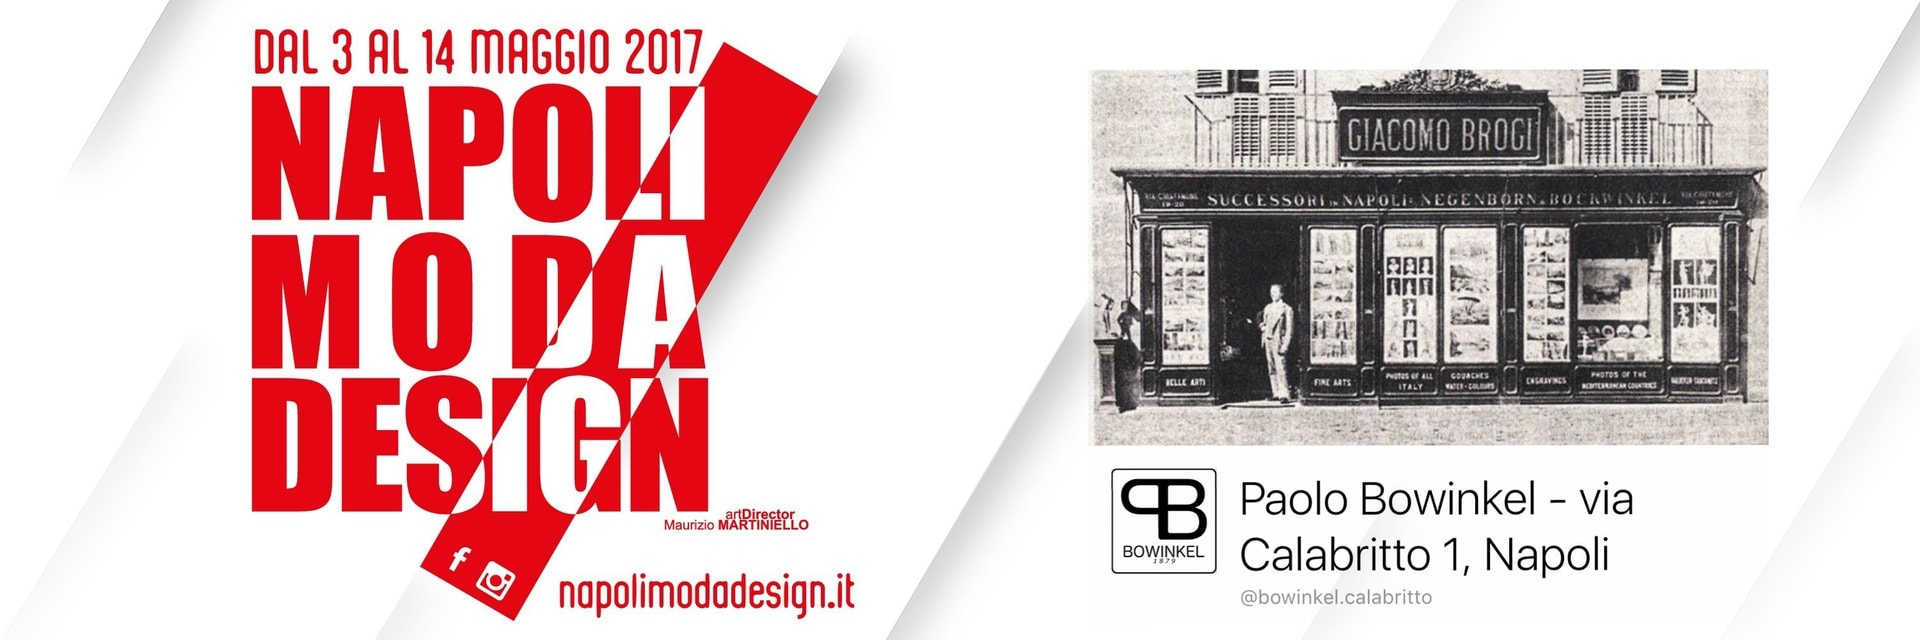 Napoli Moda Design Partner 2017